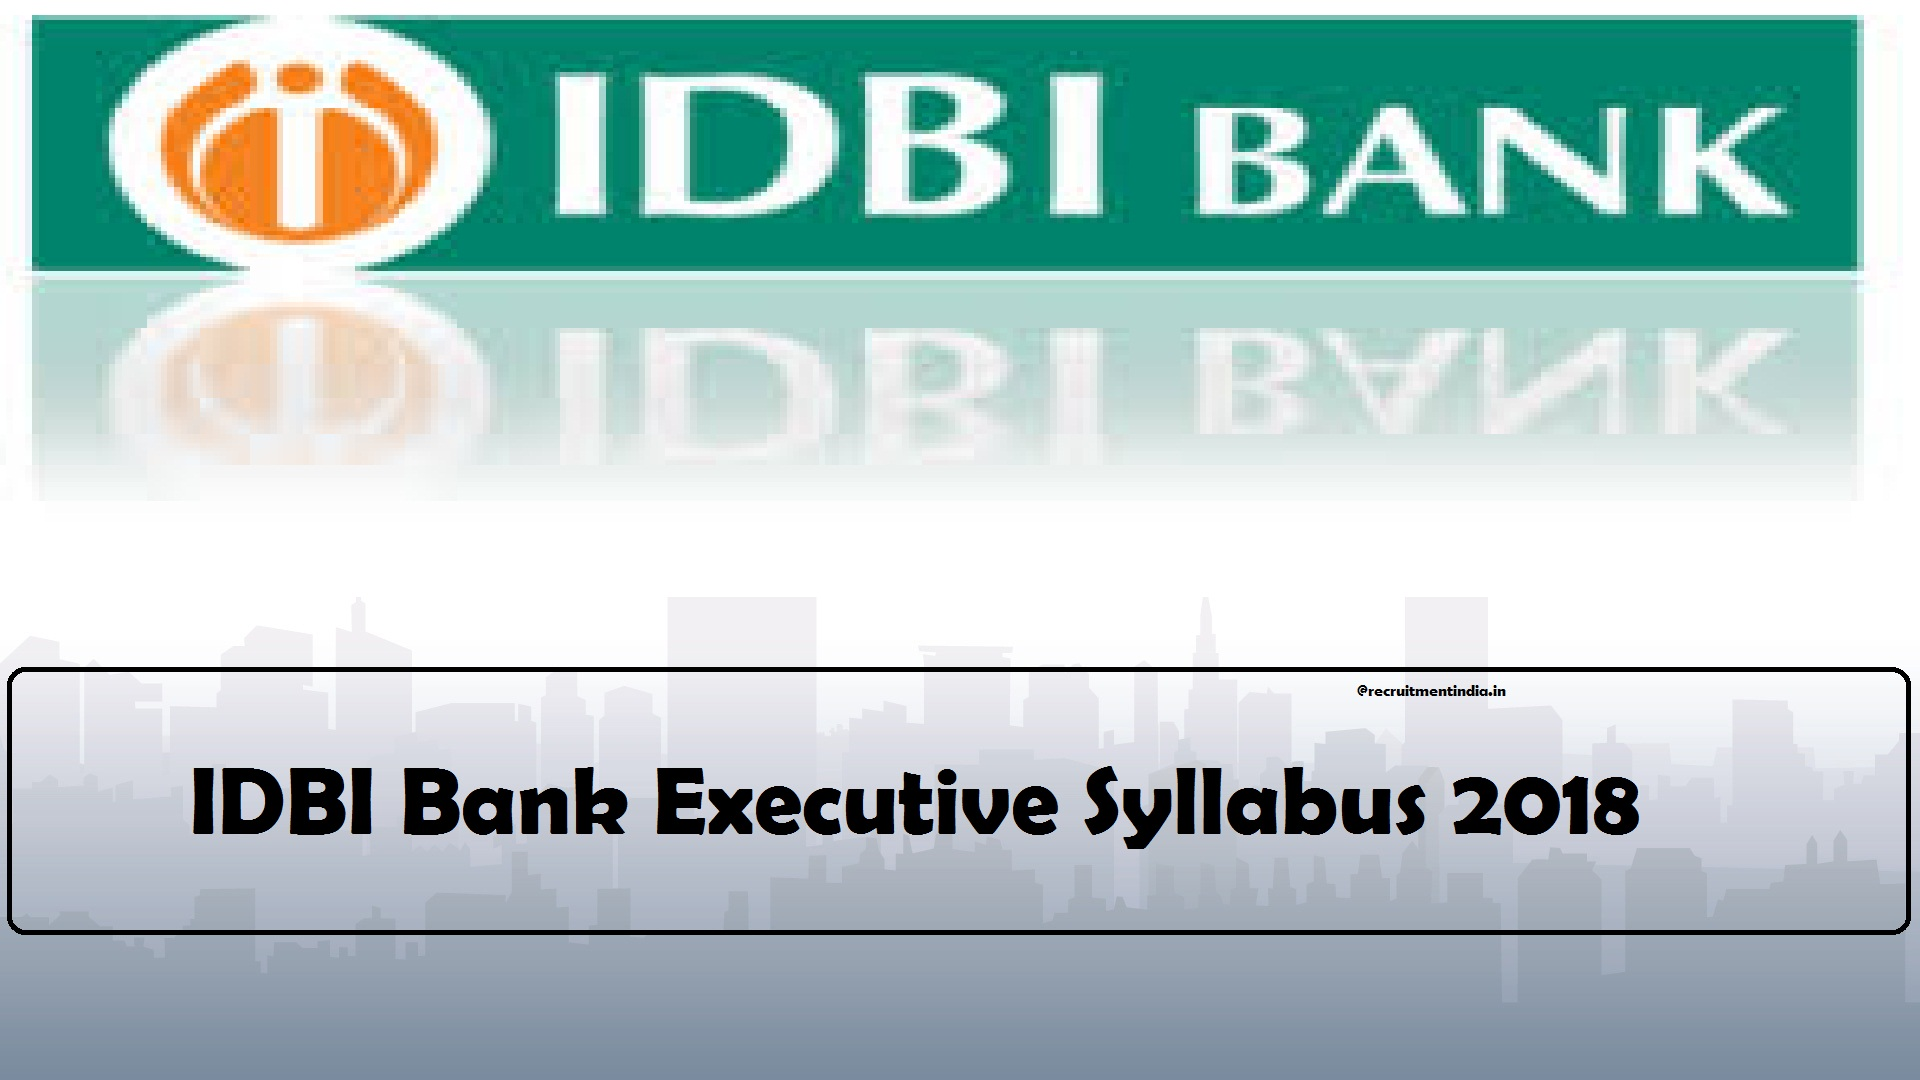 IDBI Bank Executive Syllabus 2018